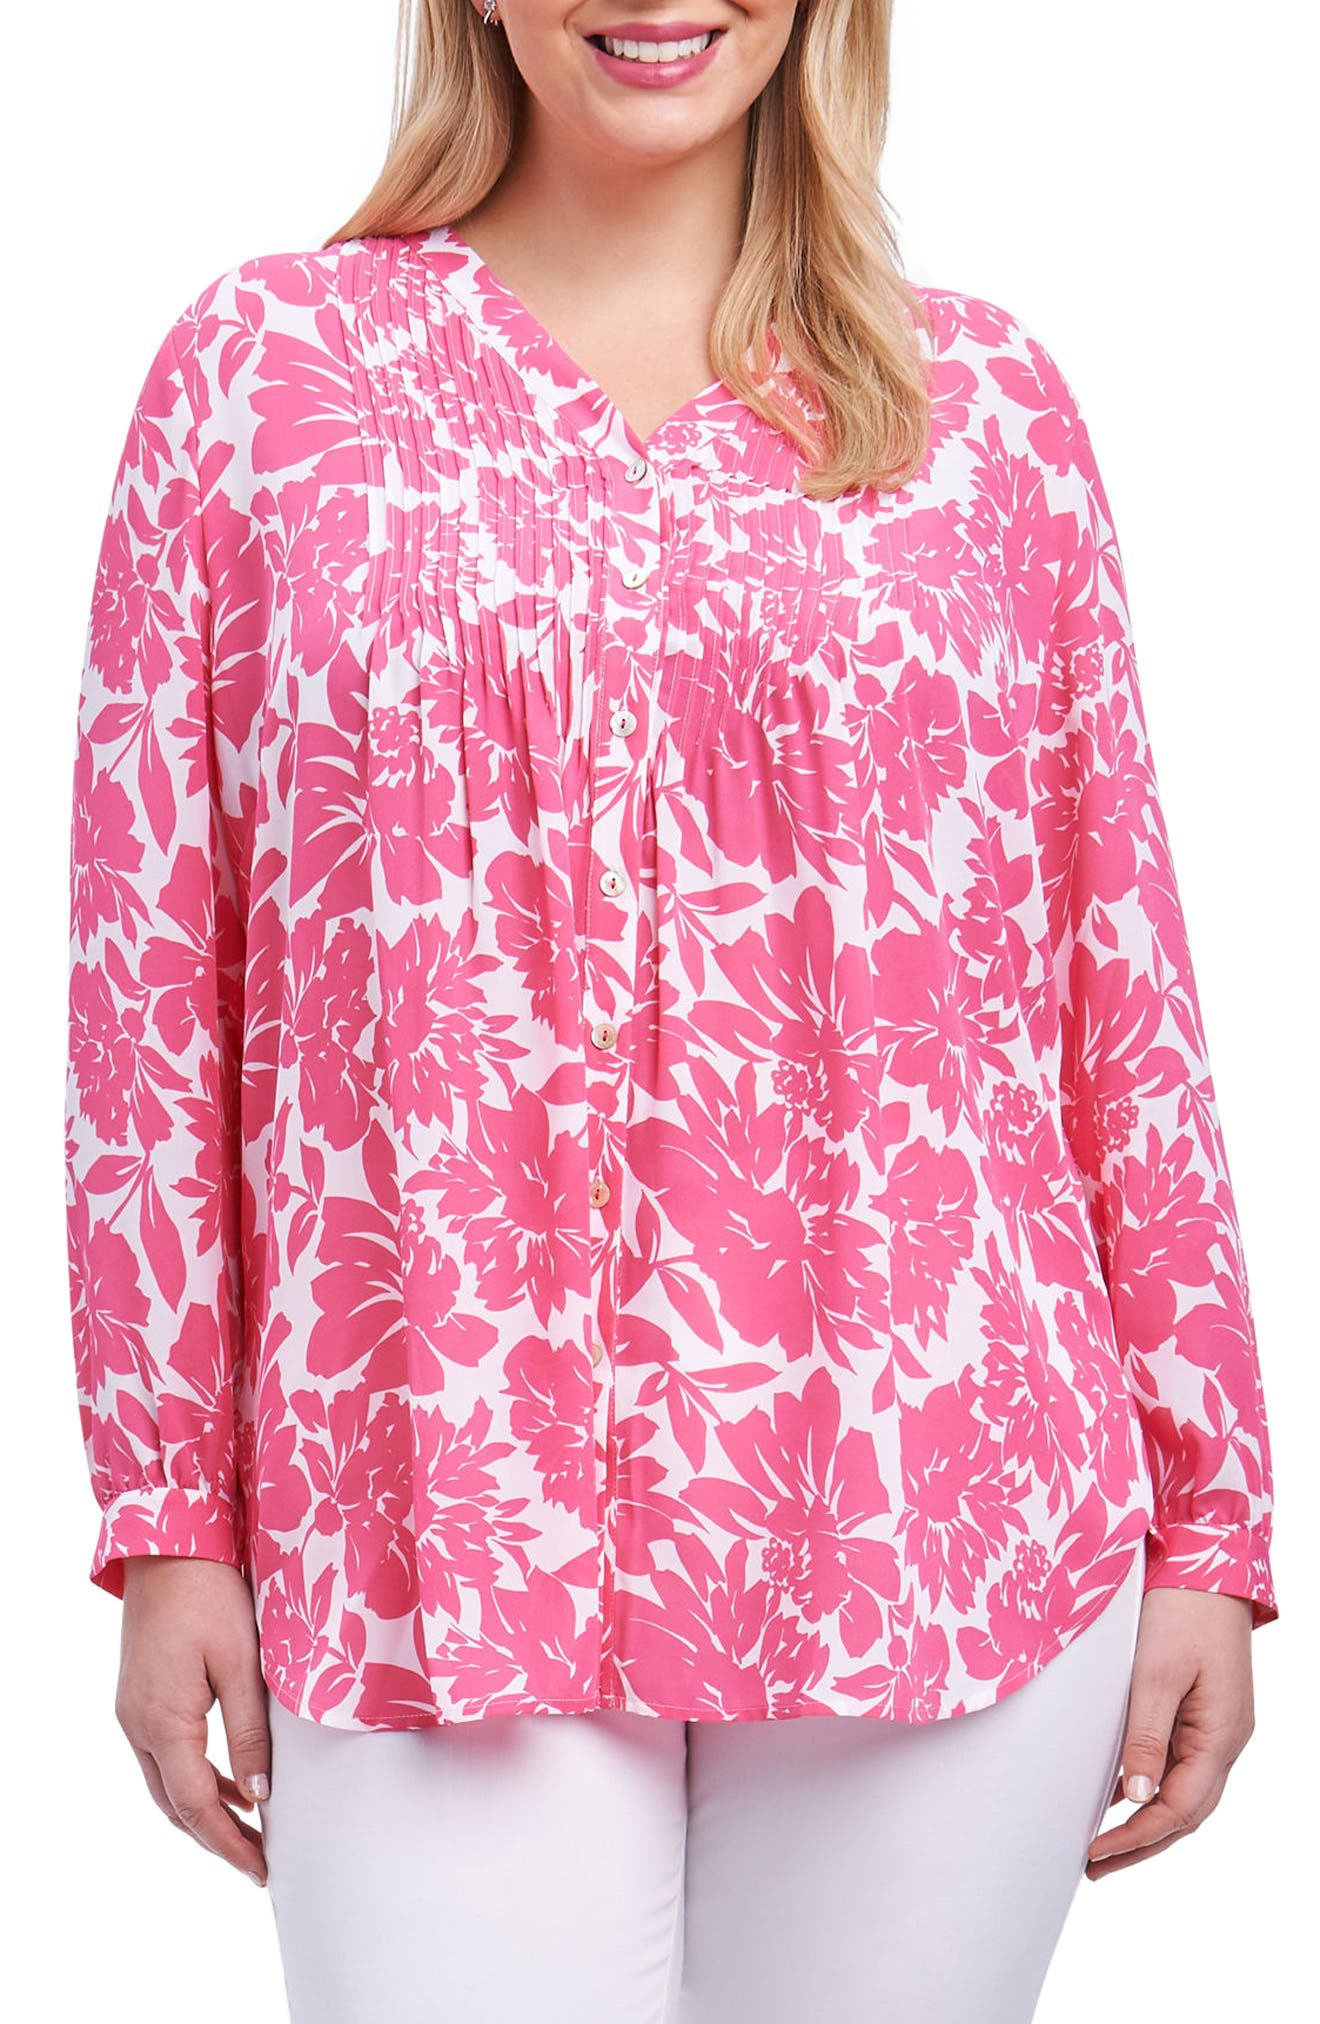 MINDY SWEET ROSE TOP